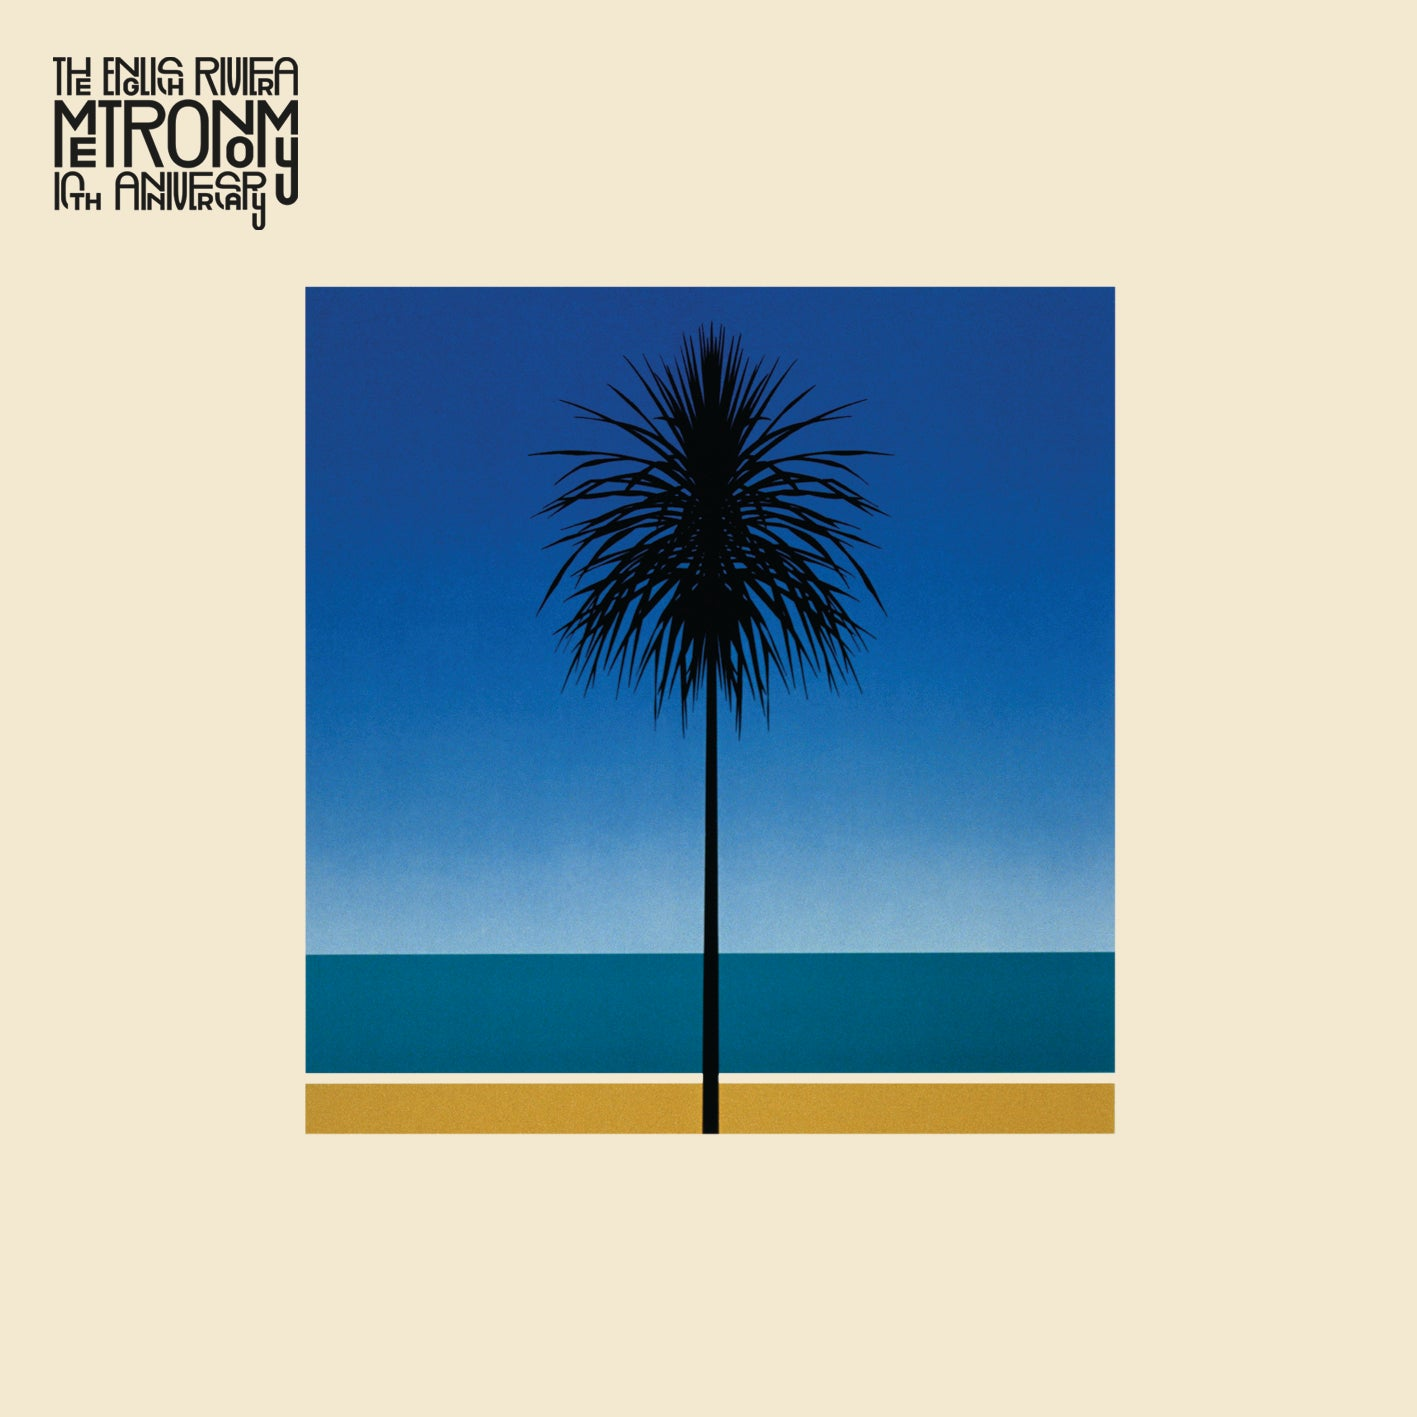 Metronomy – The English Riviera (10th Anniversary) 2LP Vinyl Record Album